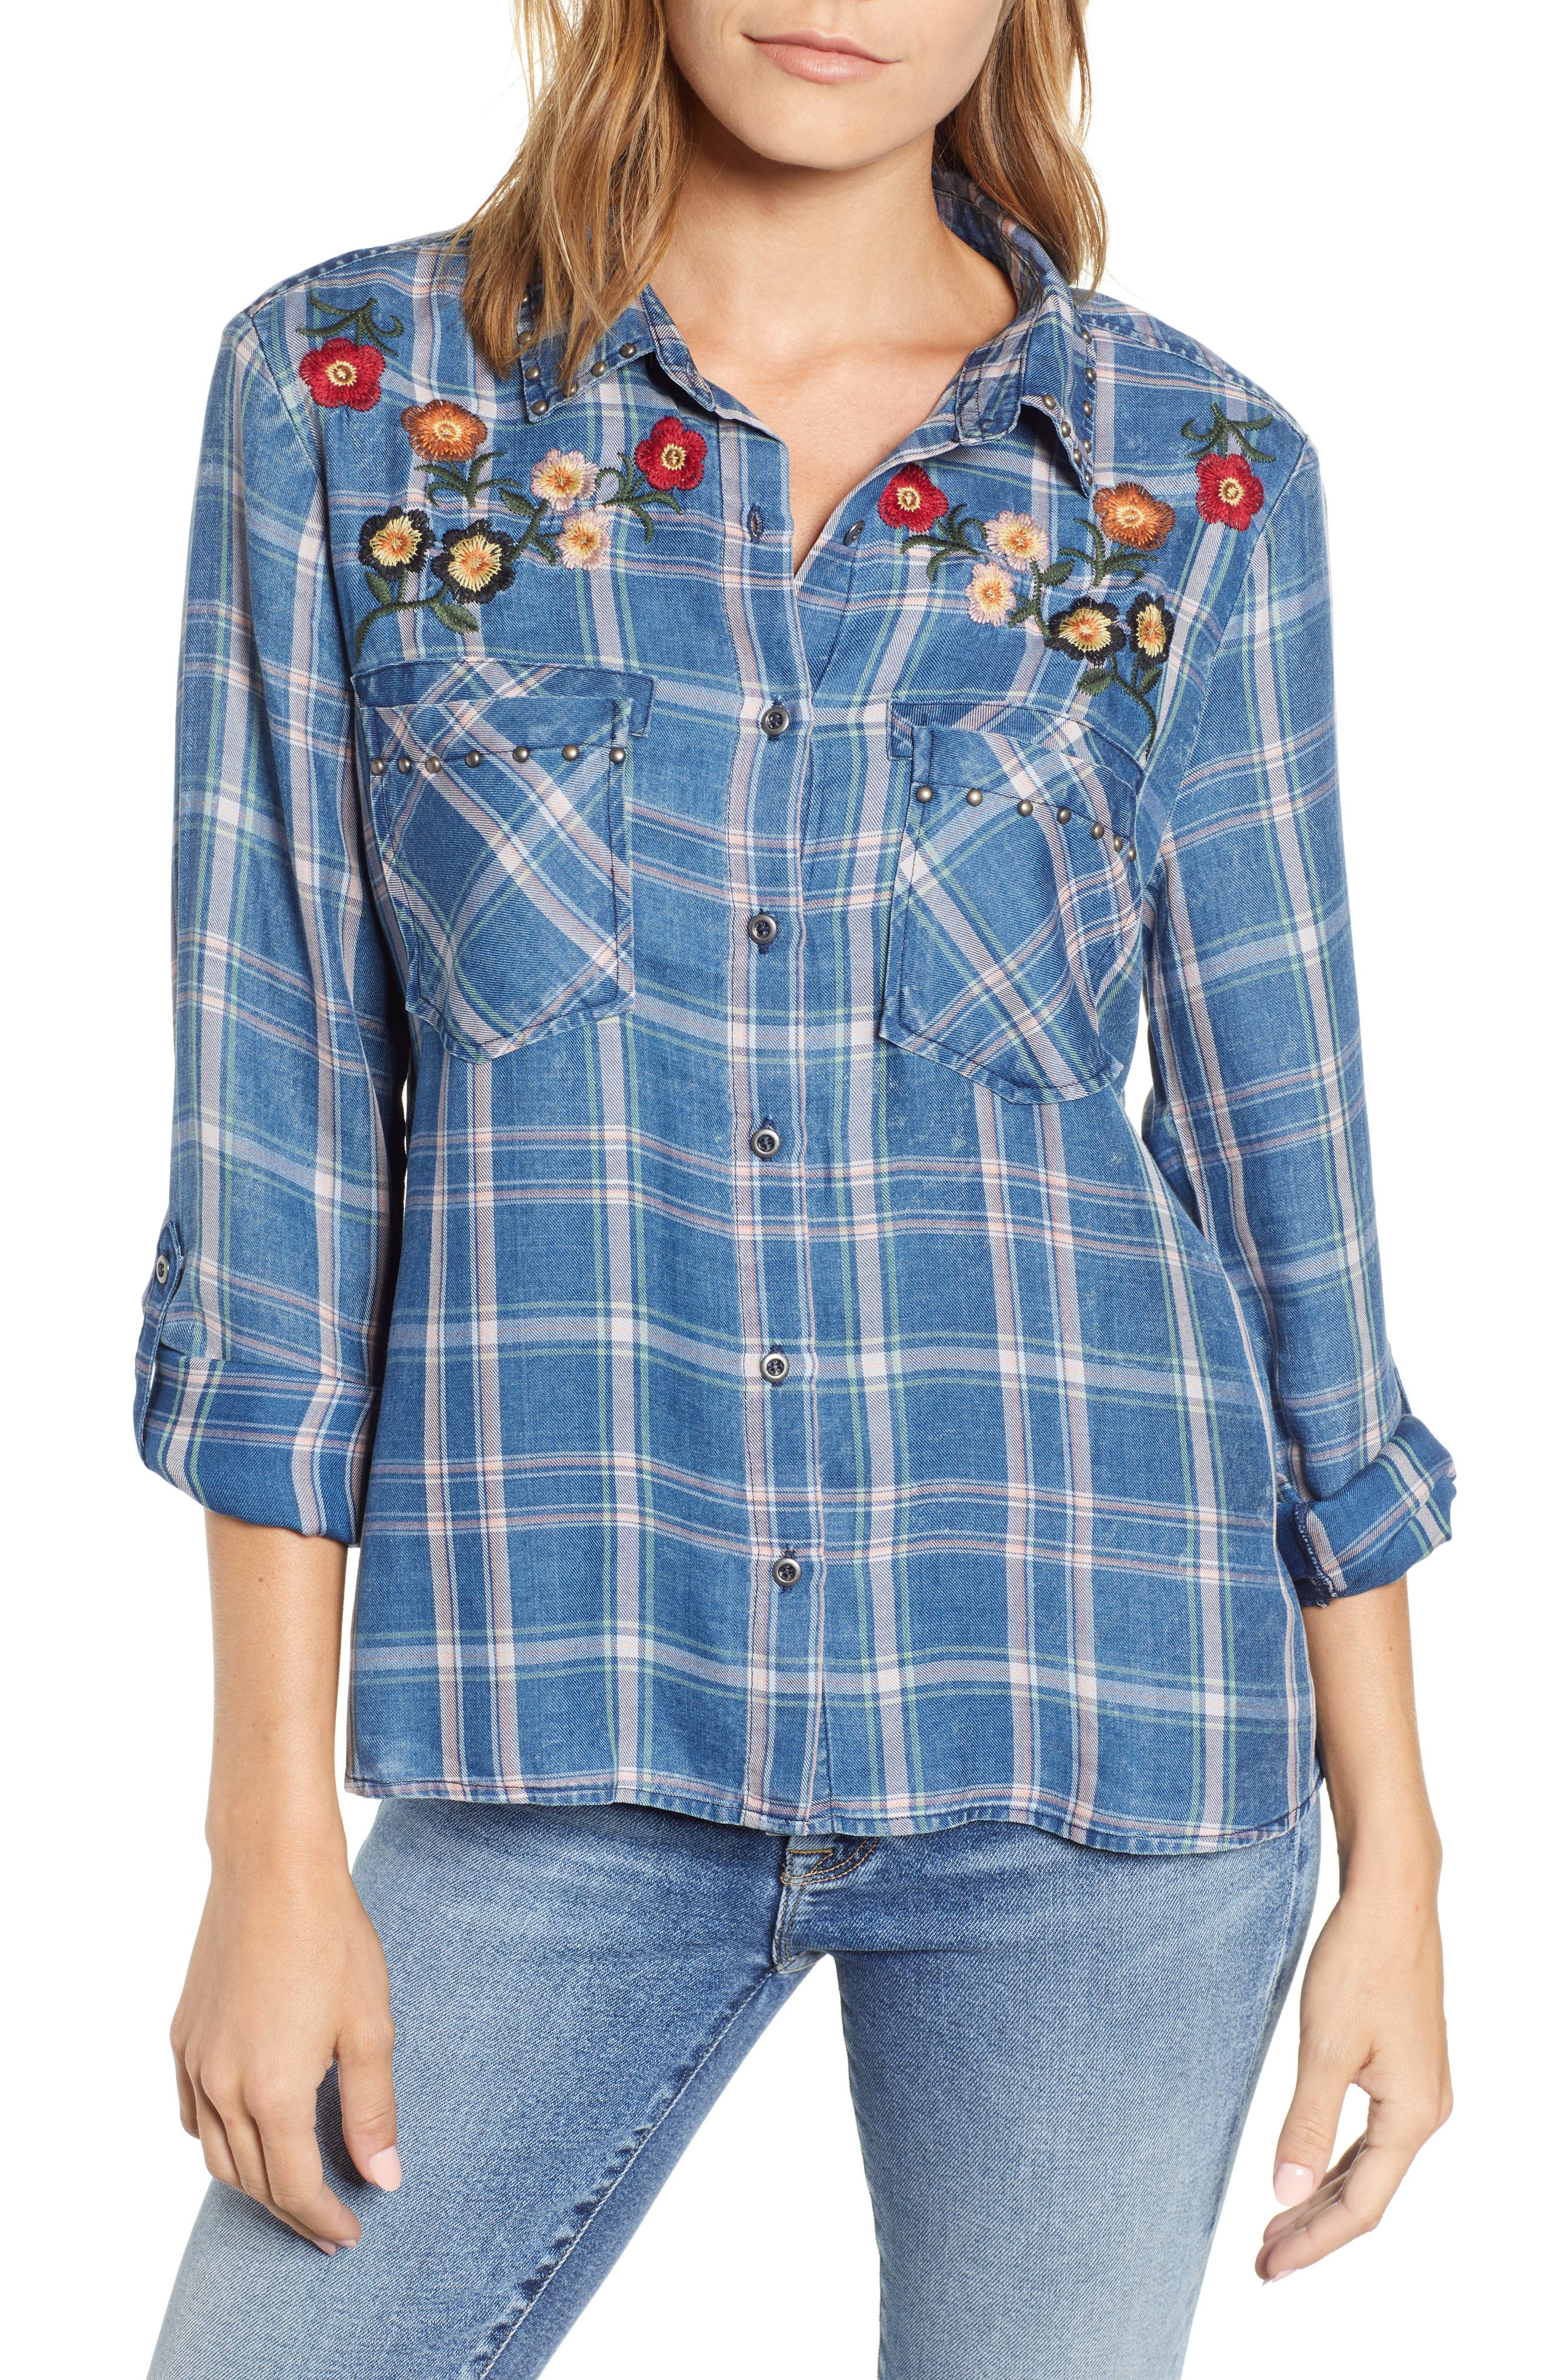 BILLY T Embroidered Plaid Roll Tab Shirt in Regal W/ Embroidery